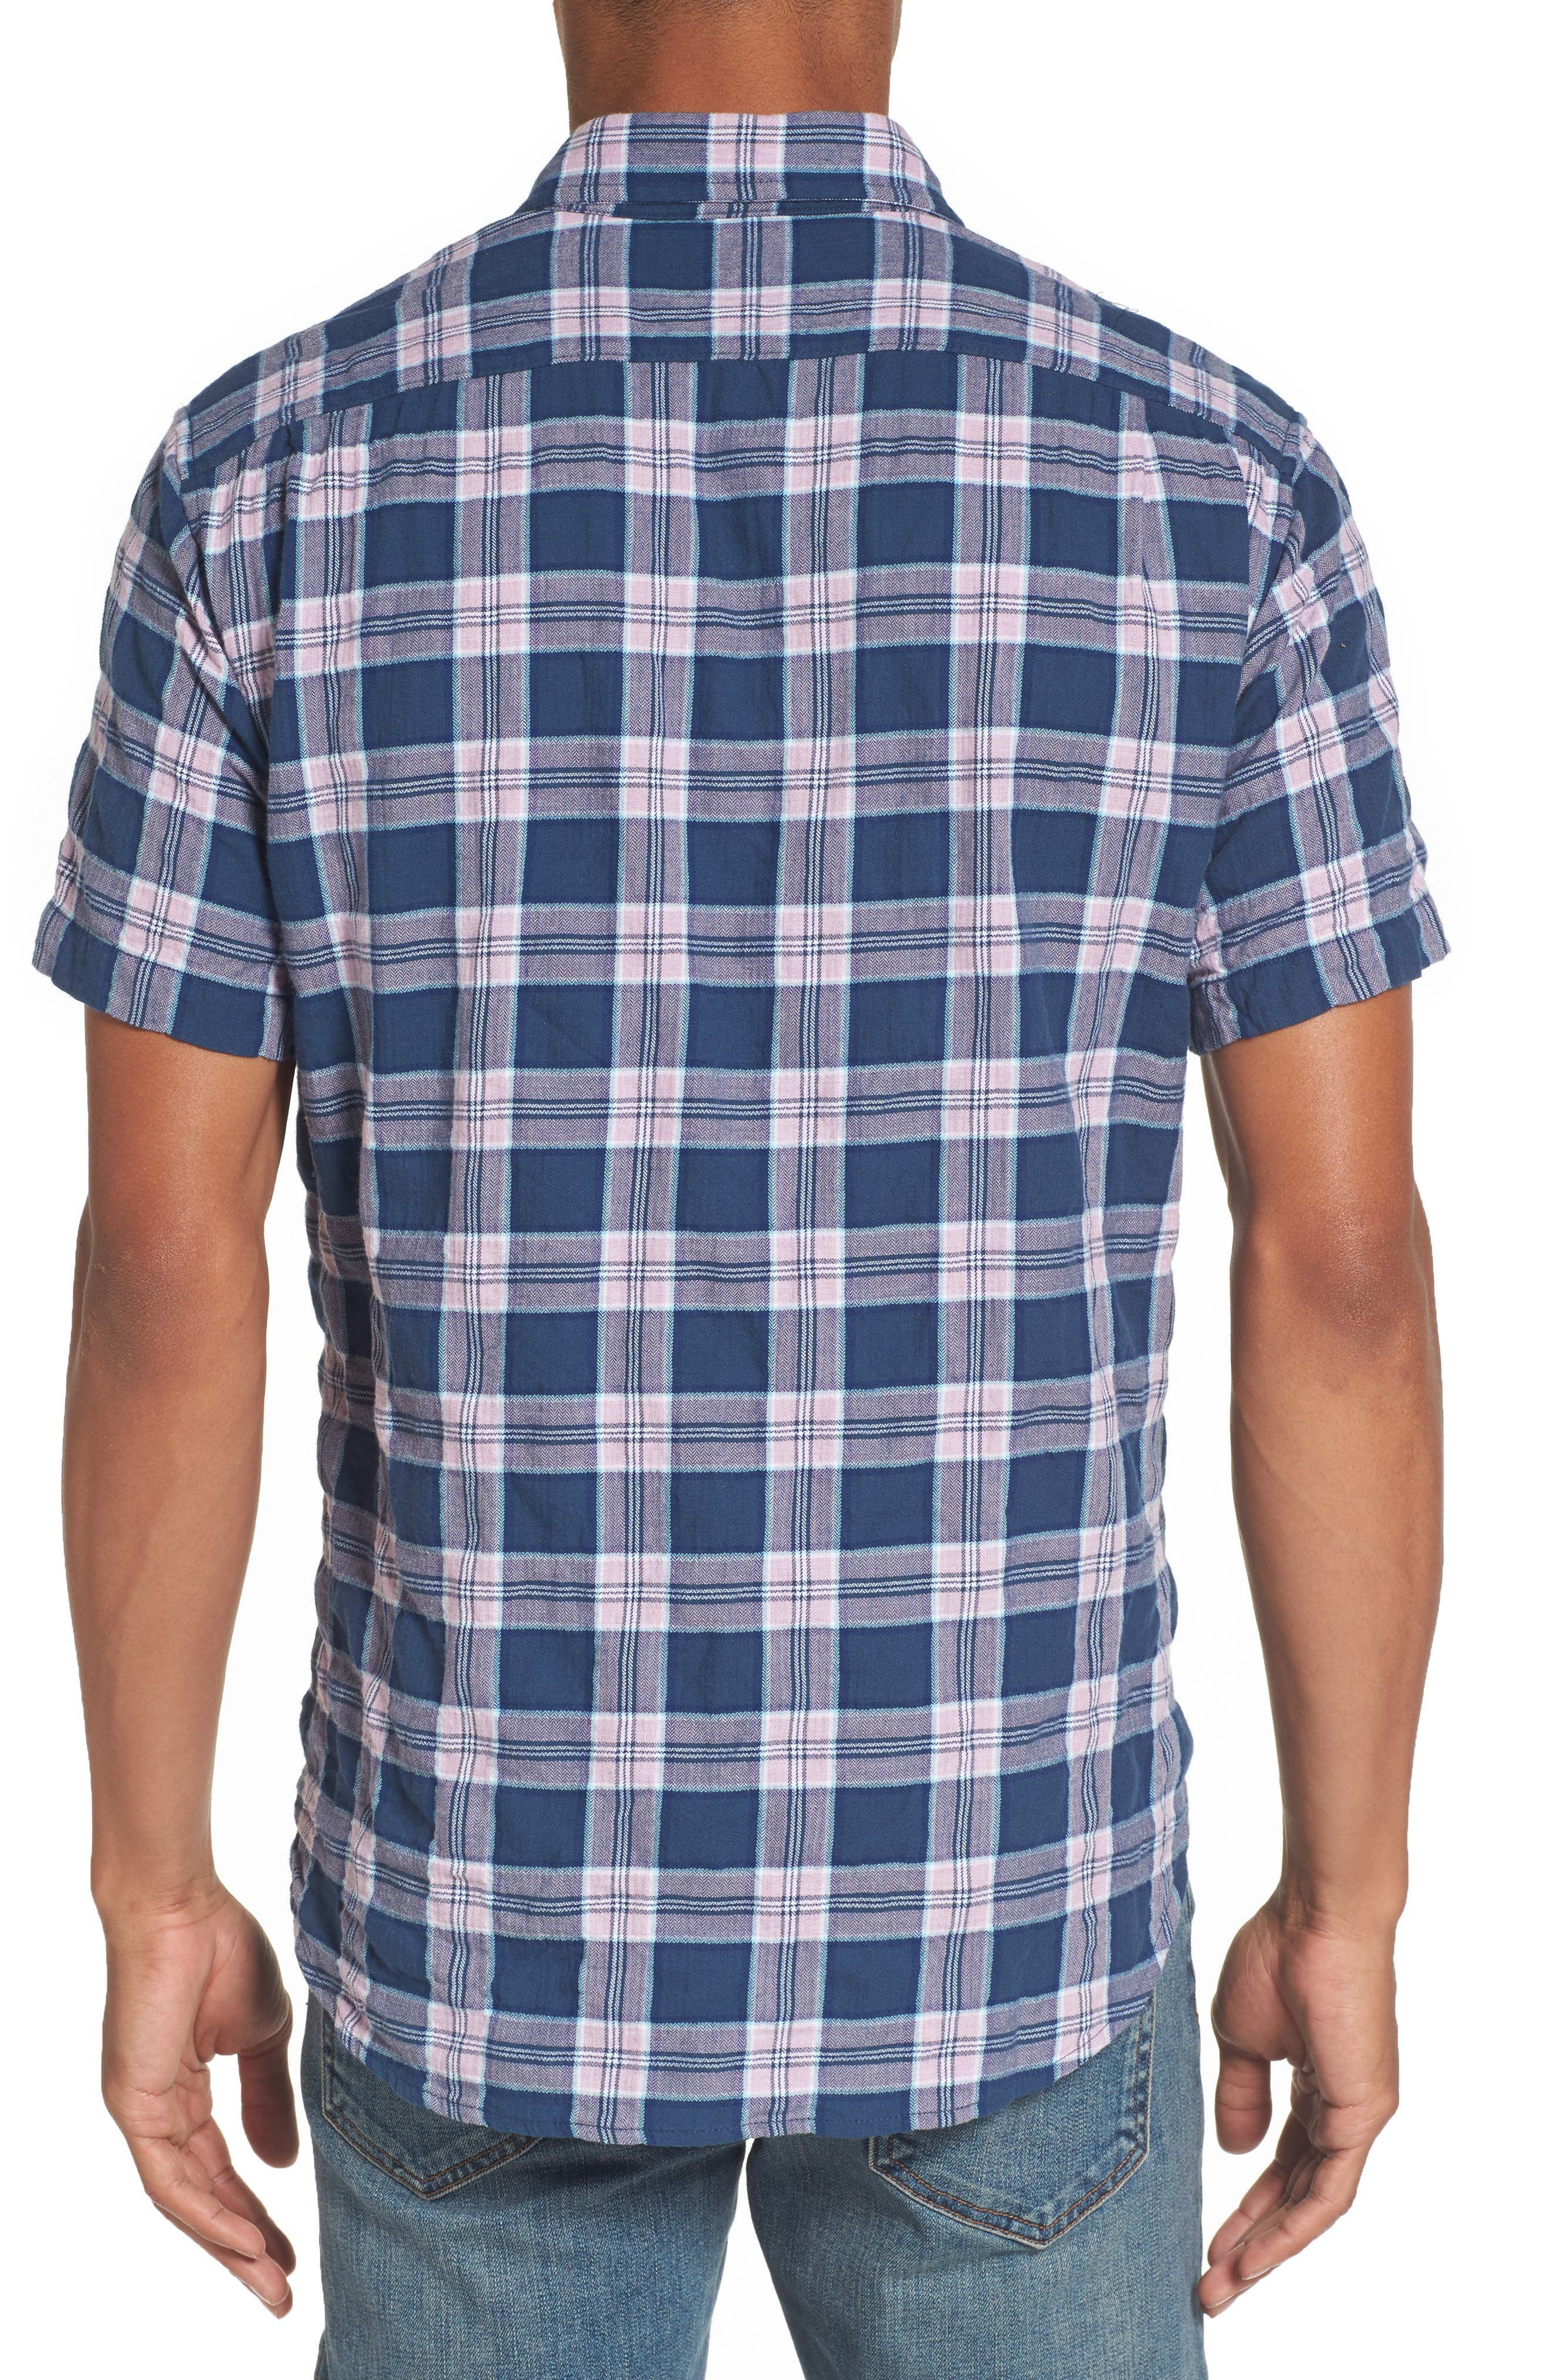 Riviera Slim Fit Plaid Woven Shirt,                             Alternate thumbnail 2, color,                             Crinkle Blue Pine Plaid